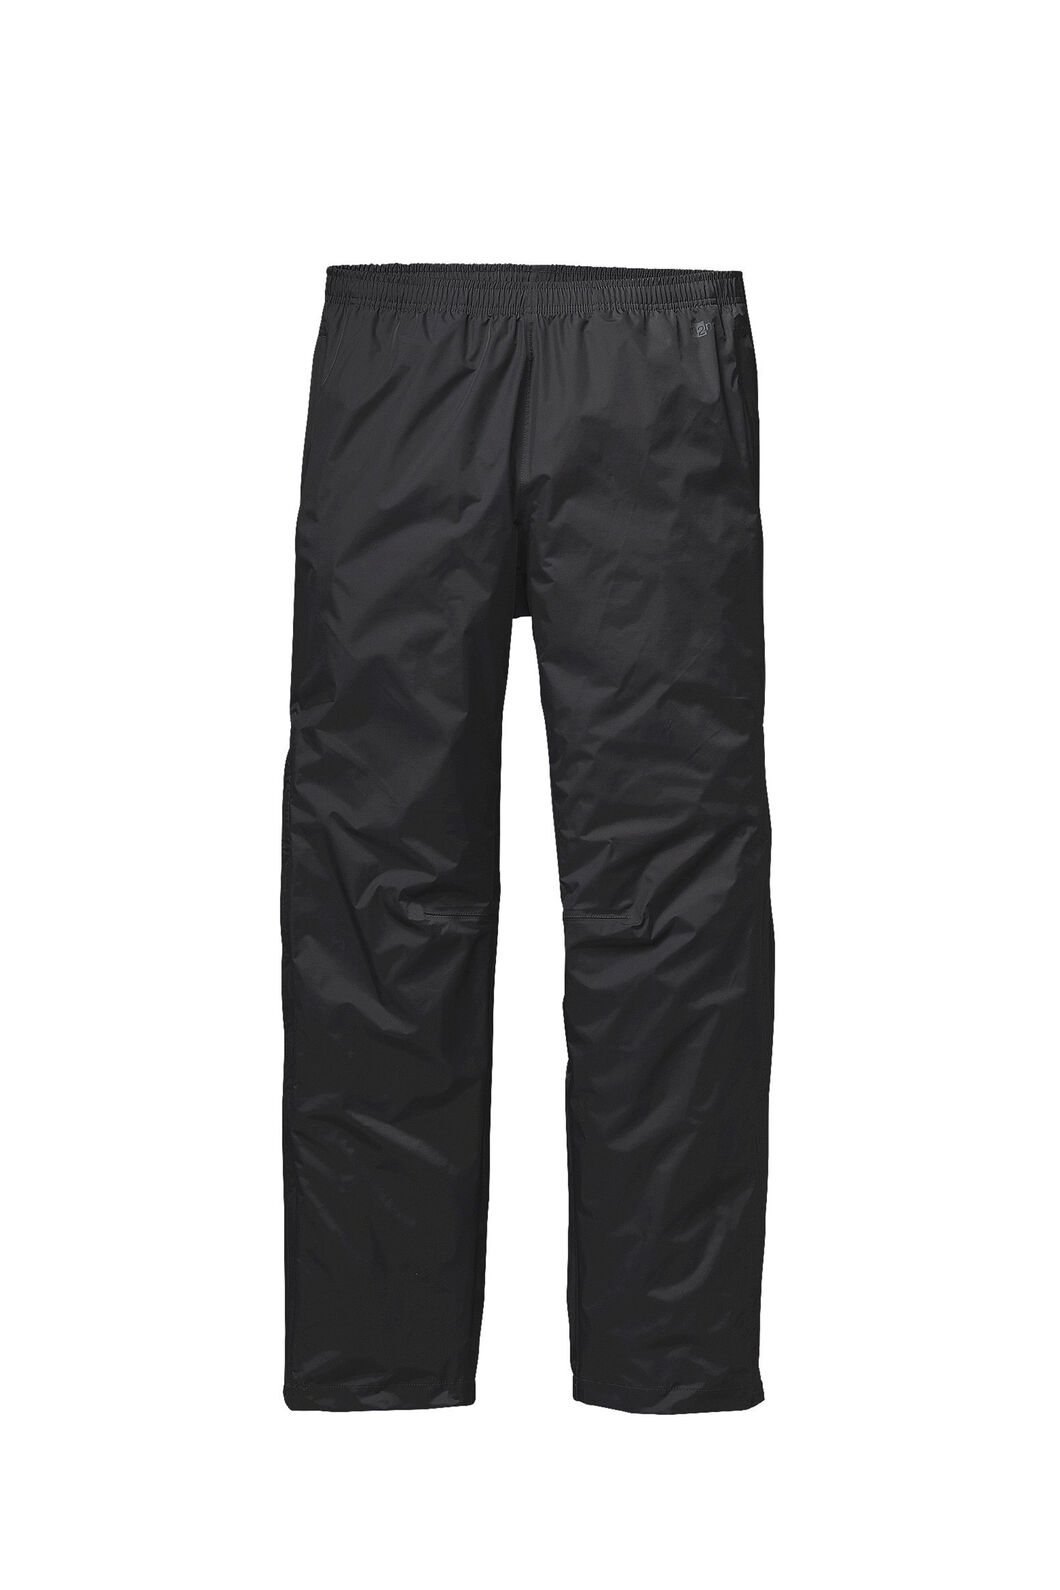 Patagonia Men's Torrentshell Pant, Black, hi-res